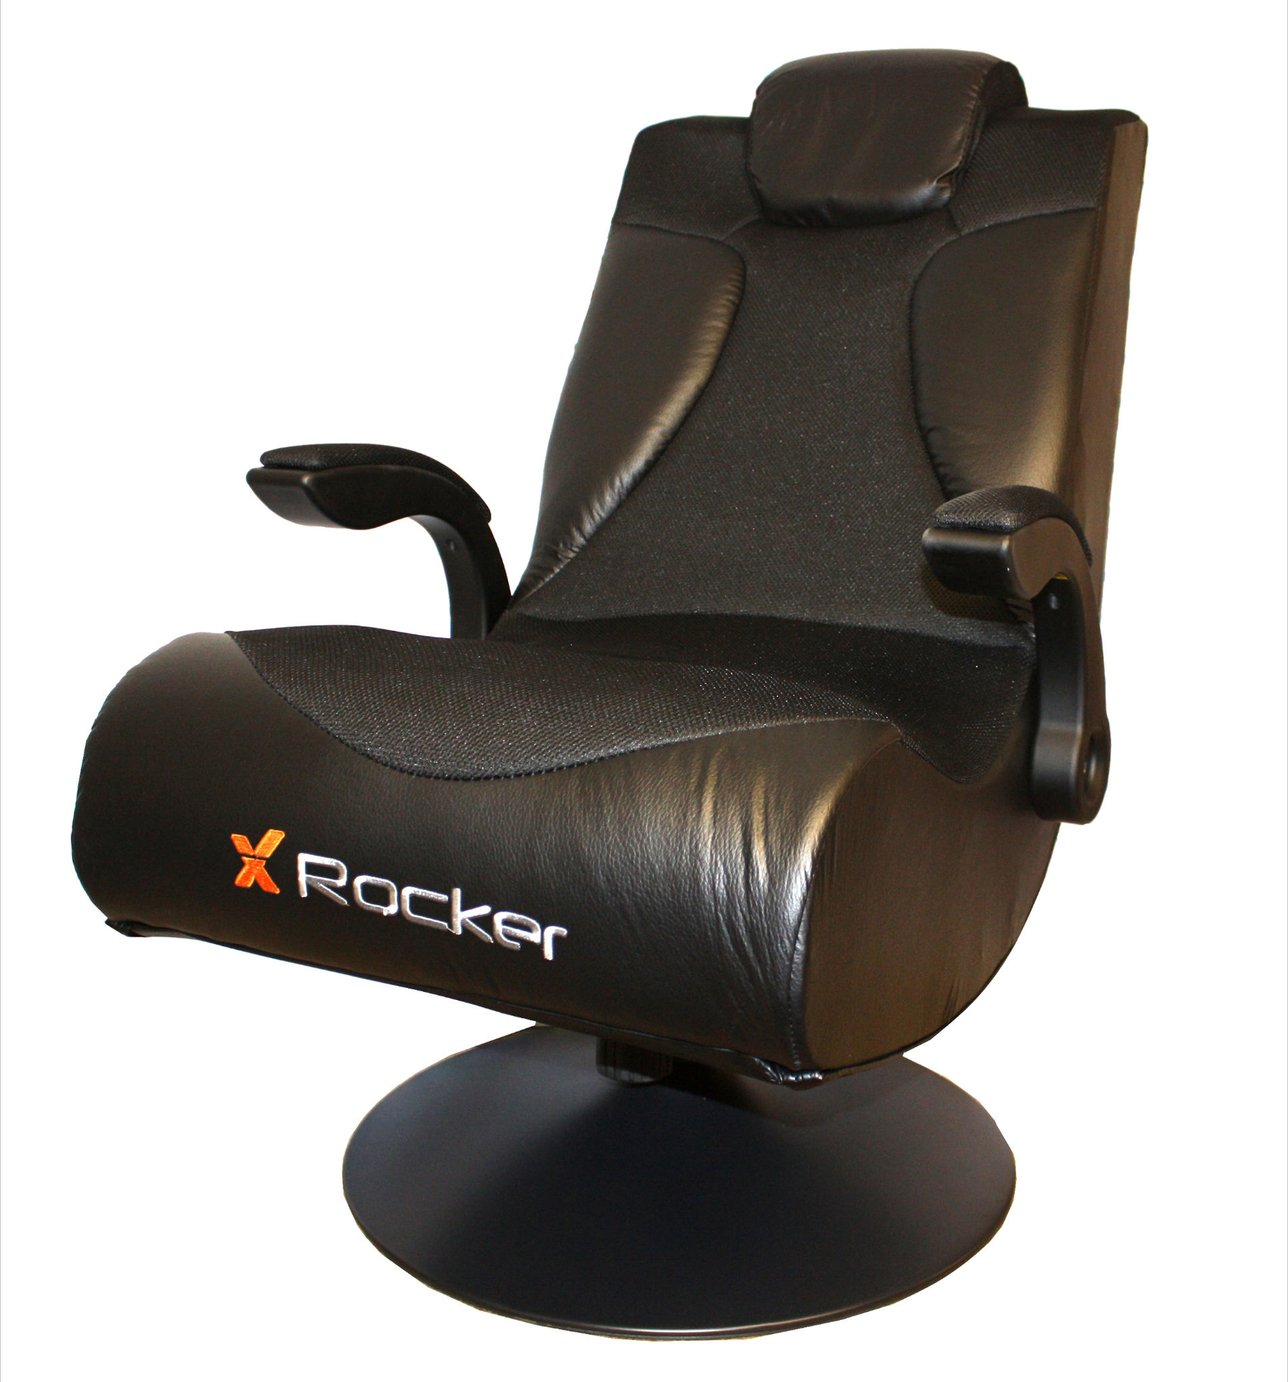 X-Rocker Vision Pro 2.1 Wireless Gaming Chair.